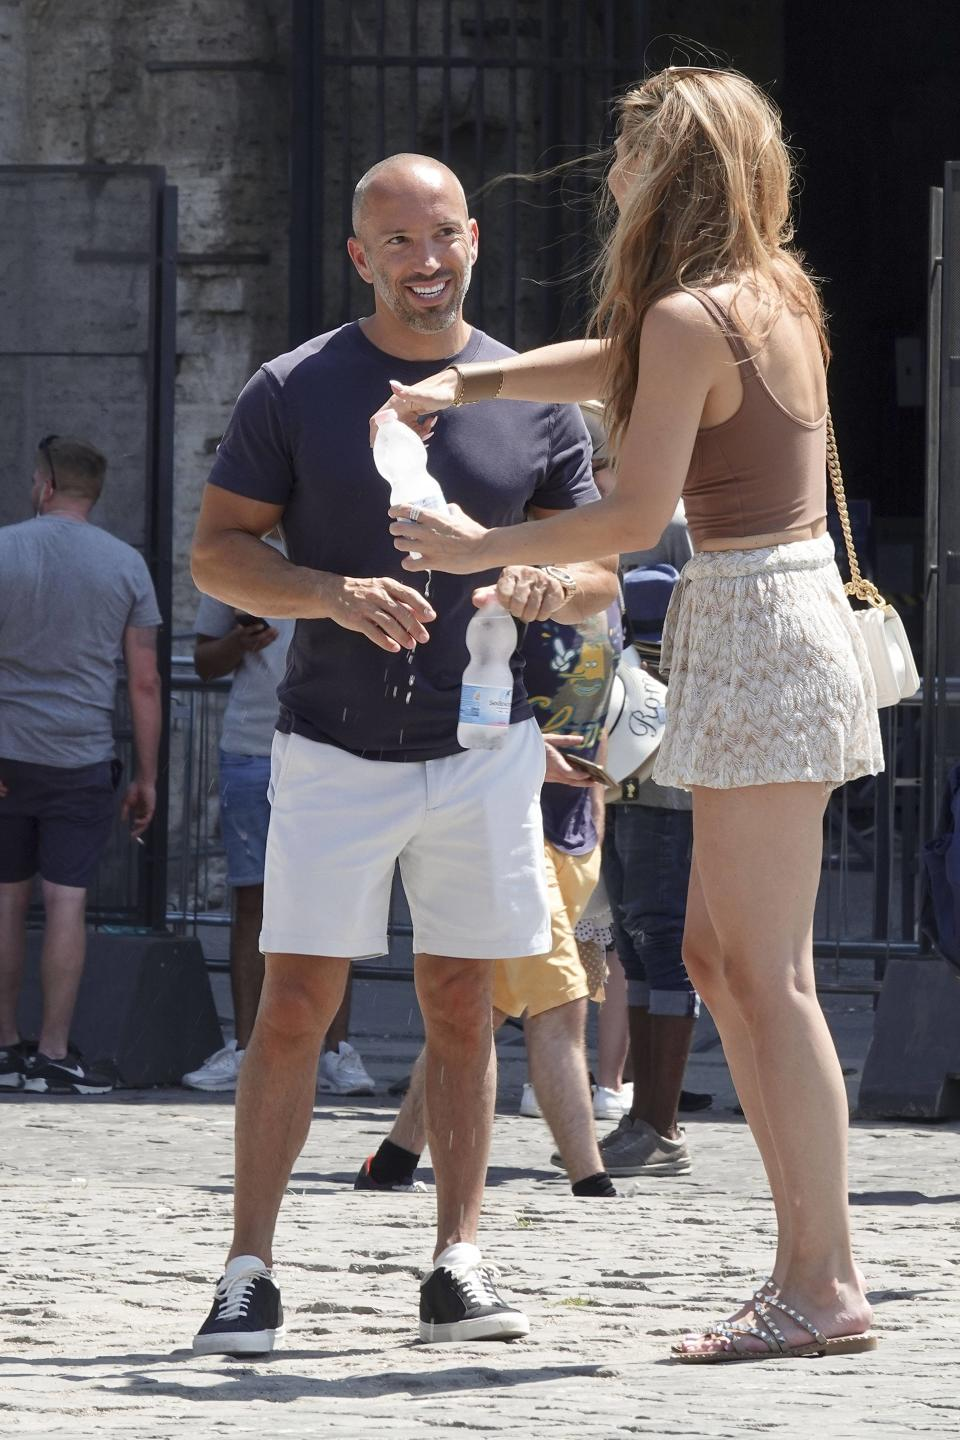 Chrishell Stause and Jason Oppenheim visit the Colosseum and the Roman Forum in Rome, Italy. - Credit: professor sorcio/MEGA